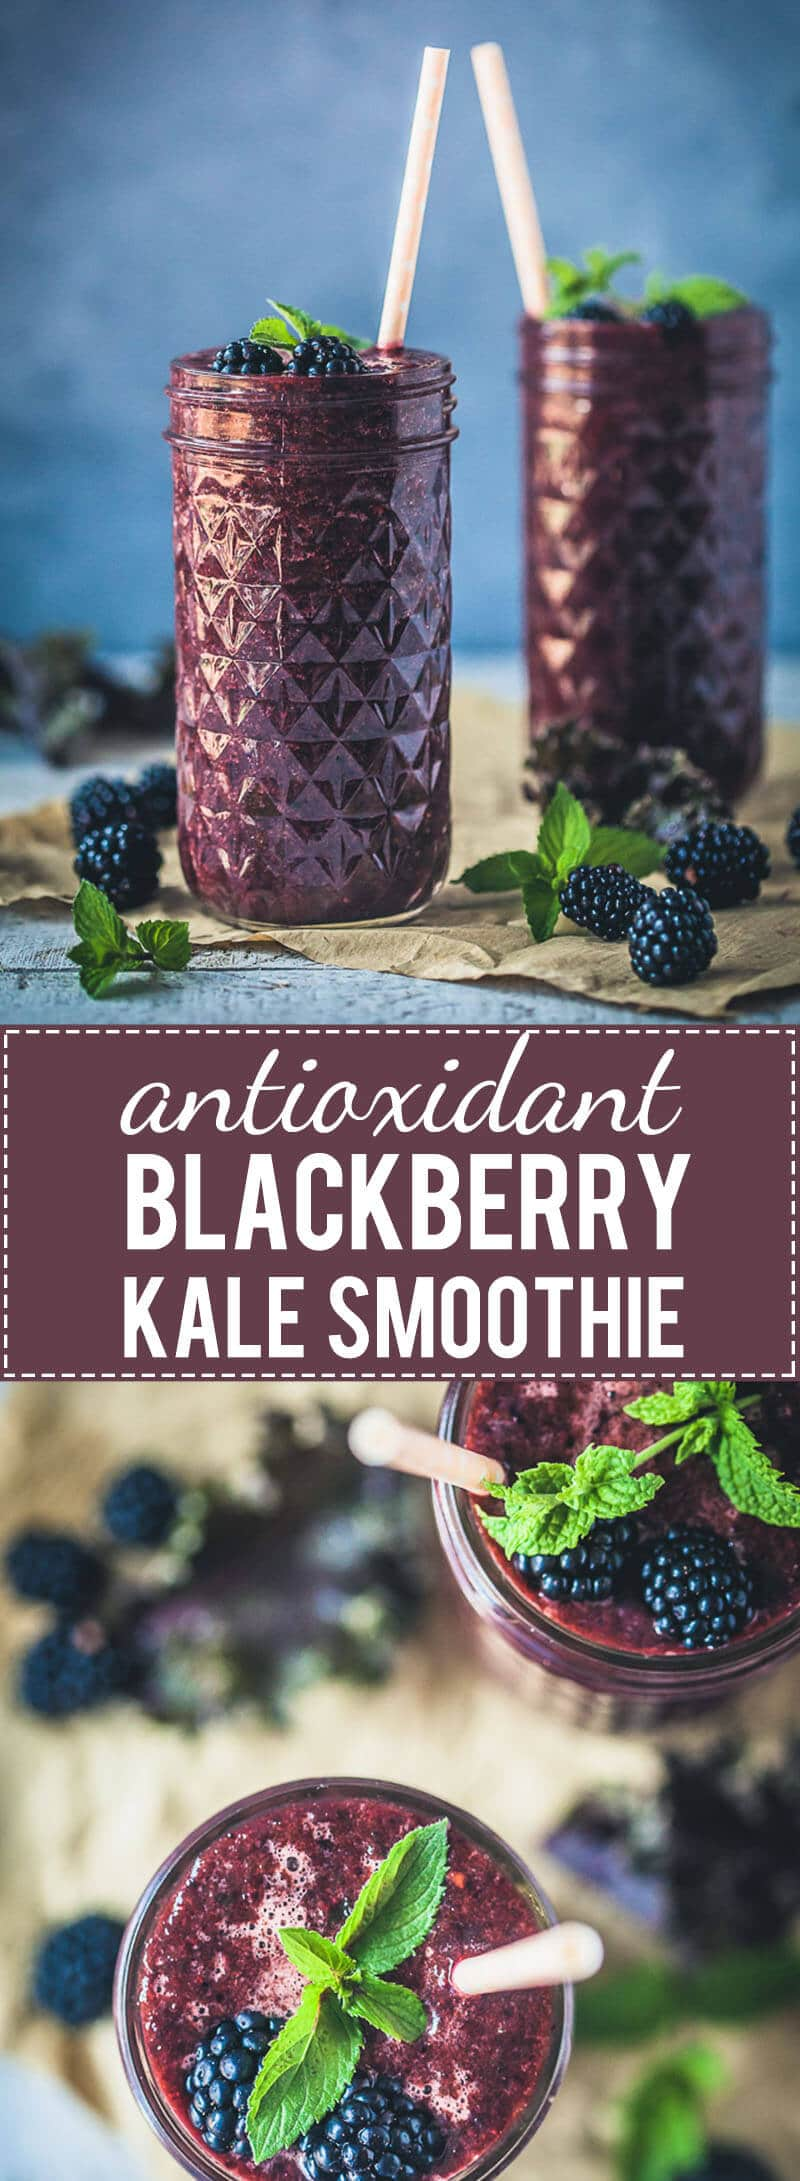 A quick and healthy drink, this Blackberry Kale Smoothie is packed full of vitamins and antioxidants, low-carb and vegan! #kalesmoohie